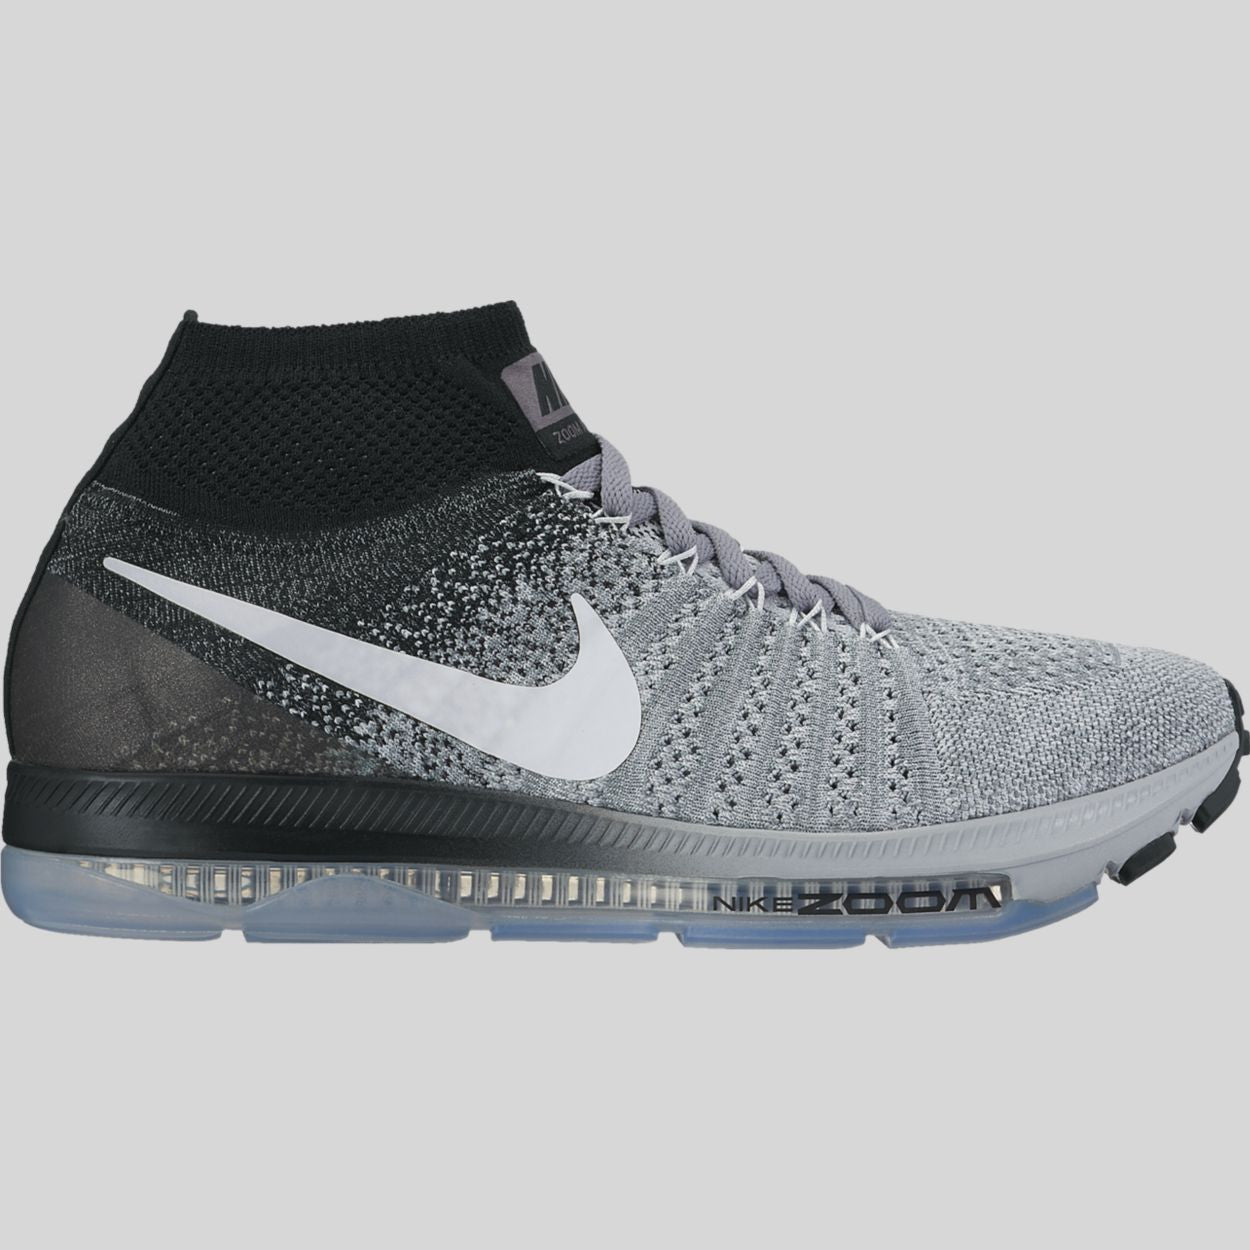 new product a9d12 7399d Nike Wmns Zoom All Out Flyknit Wolf Grey White Black Pure Platinum  (845361-003